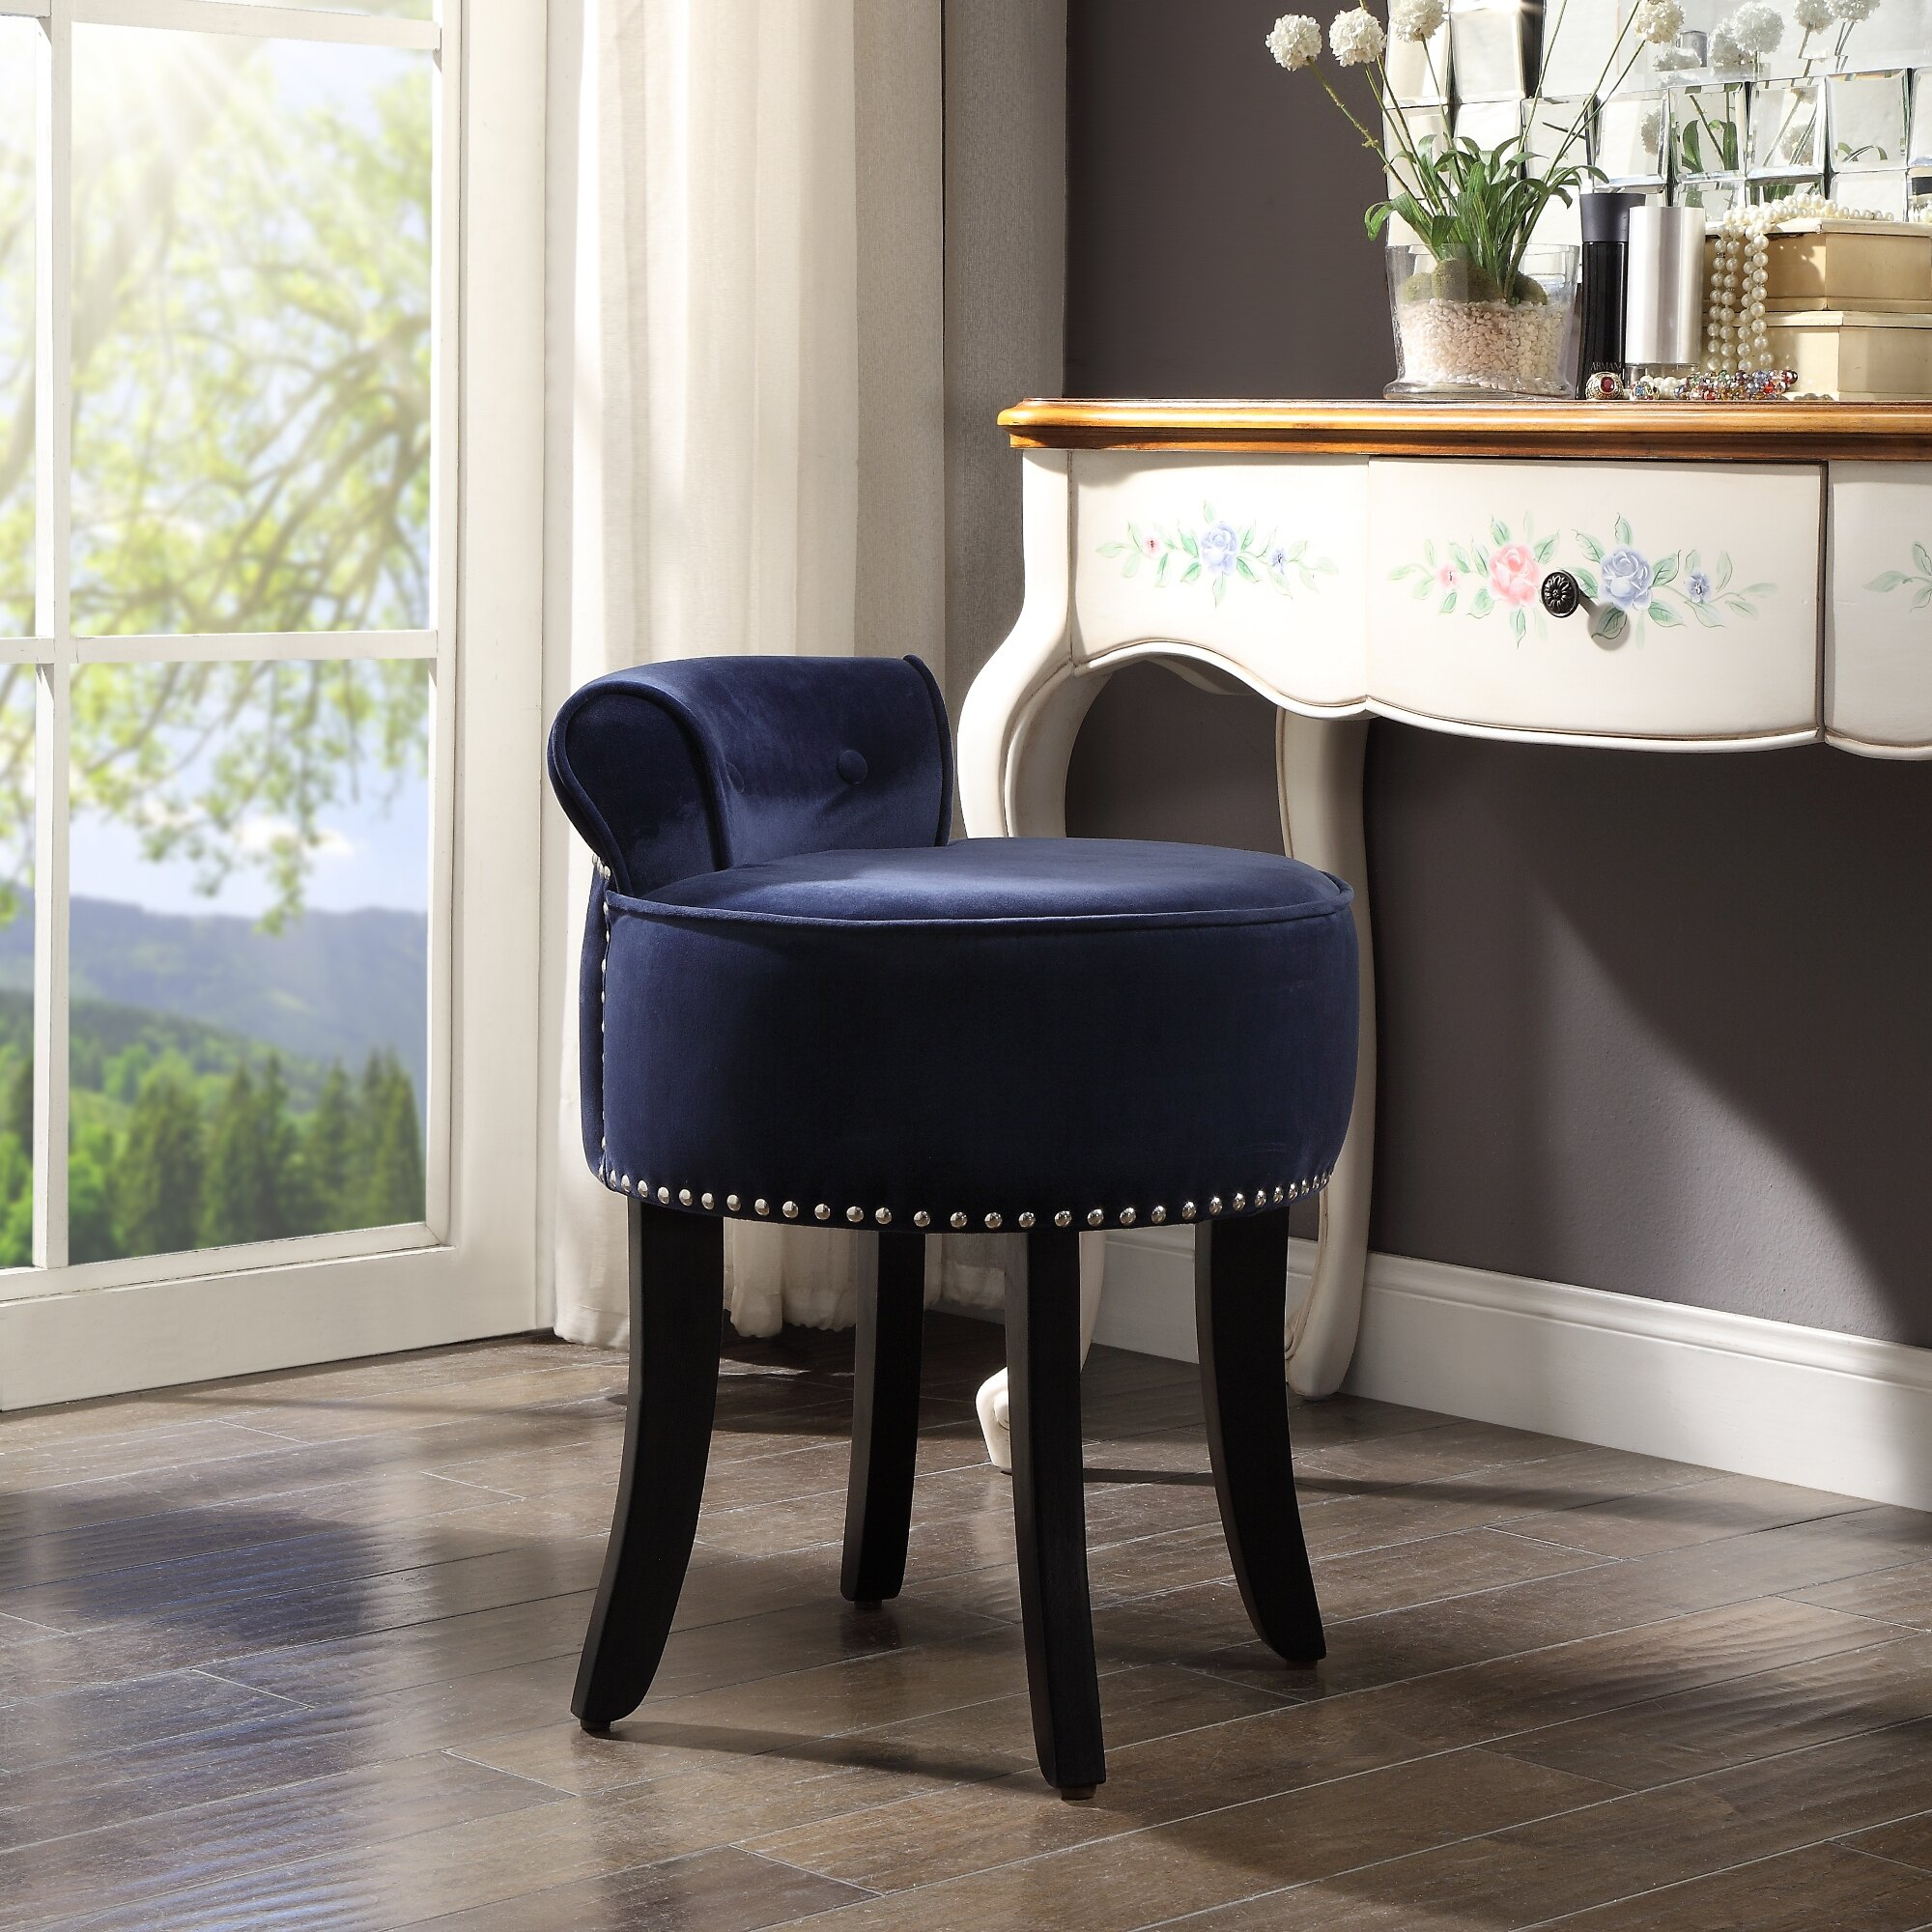 Enjoyable Ingrid Velvet Vanity Stool Nailhead Trim Roll Back Button Tufted Bedroom Inspired Home Bralicious Painted Fabric Chair Ideas Braliciousco